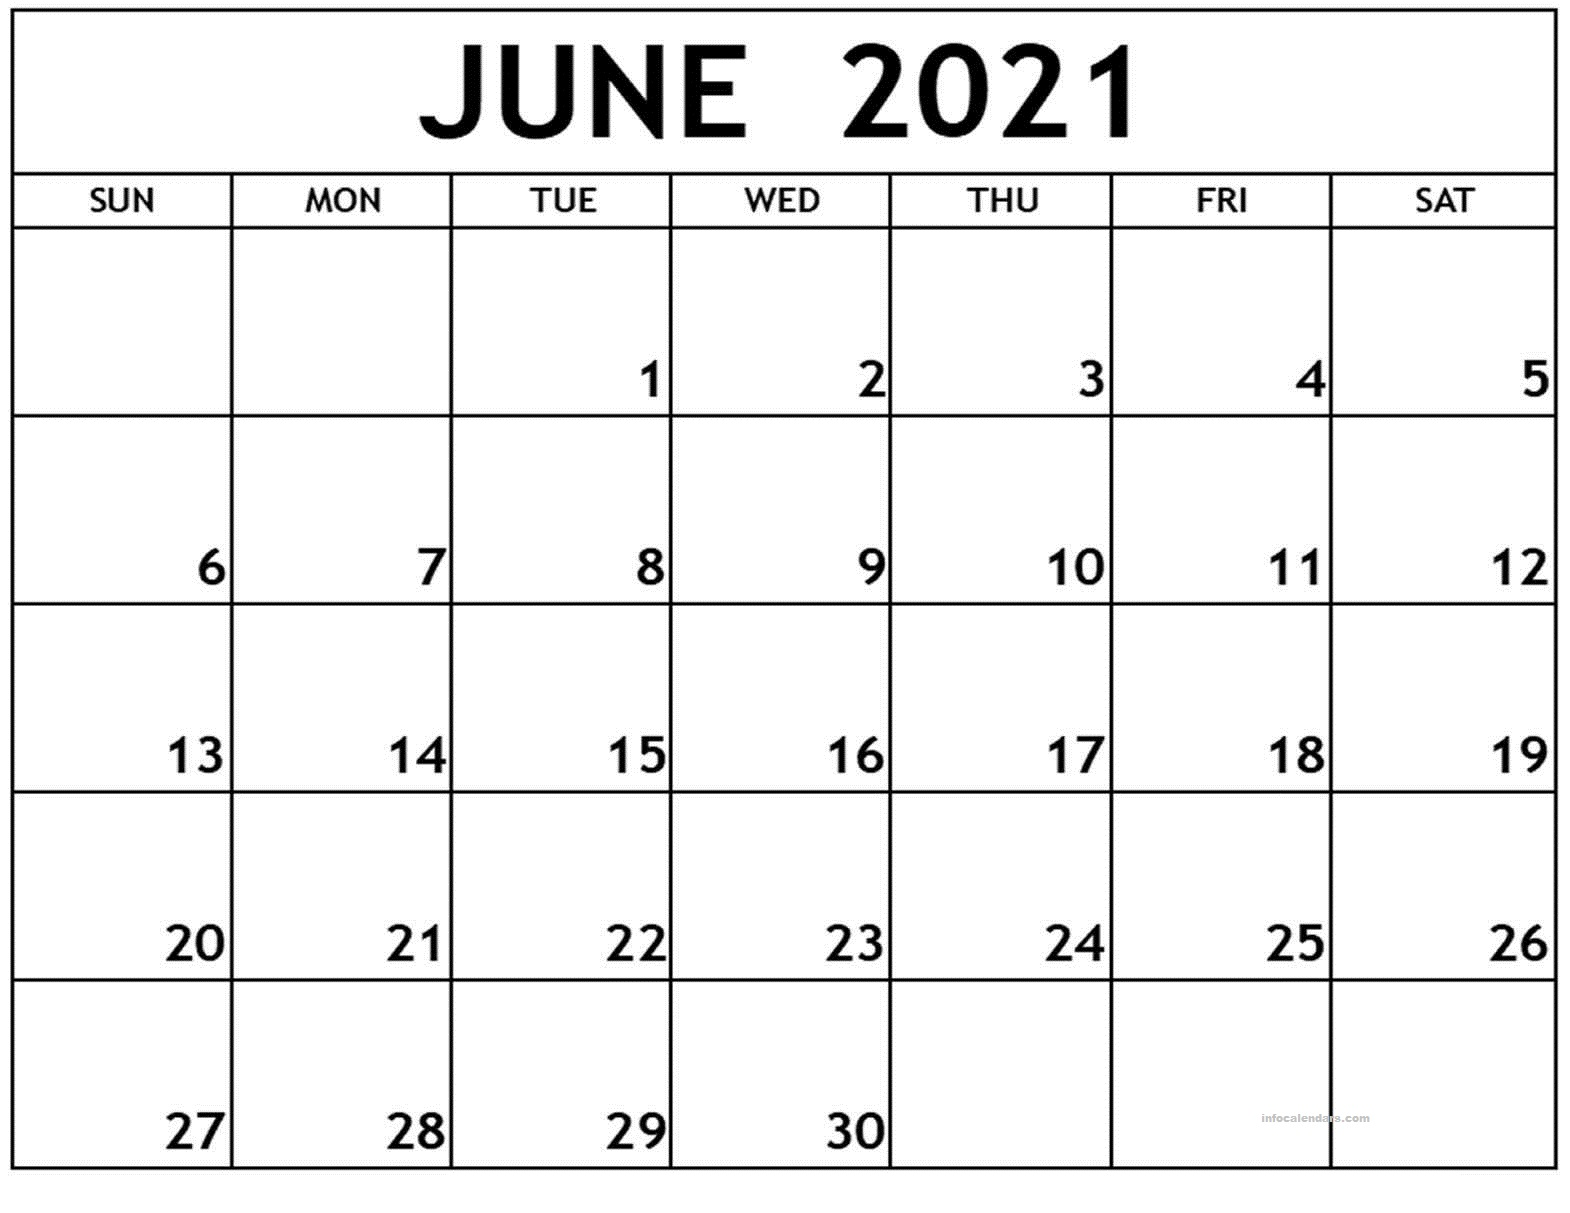 June 2021 Calendar Monthly